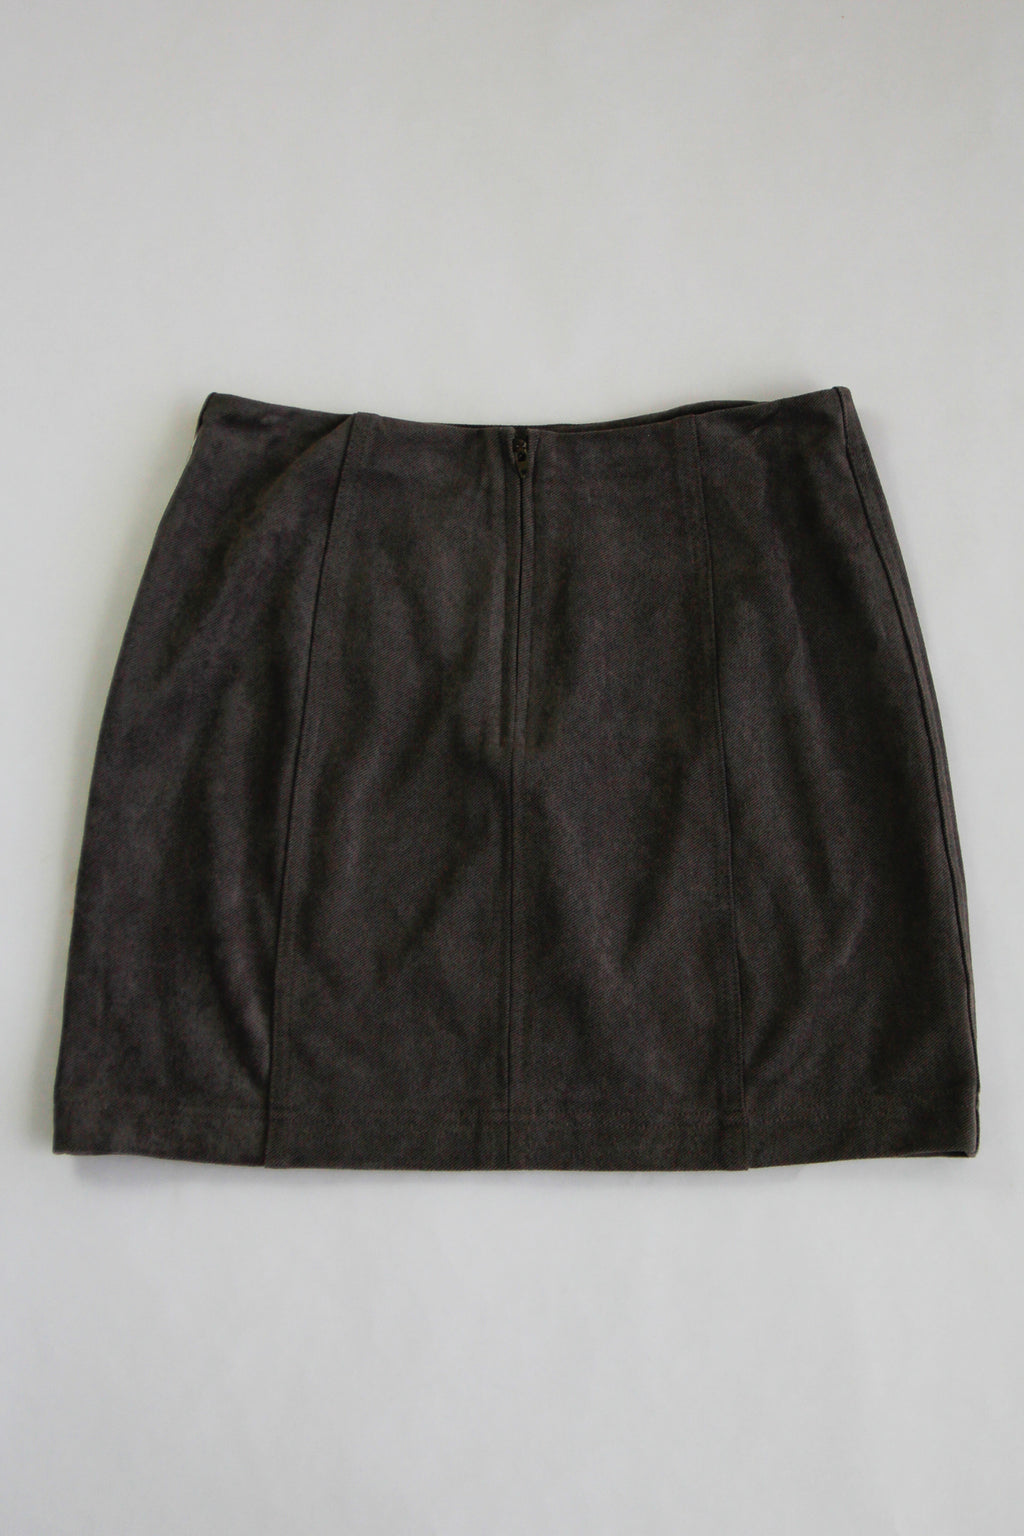 adf42d6d87 Goes With Everything Skirt - Charcoal